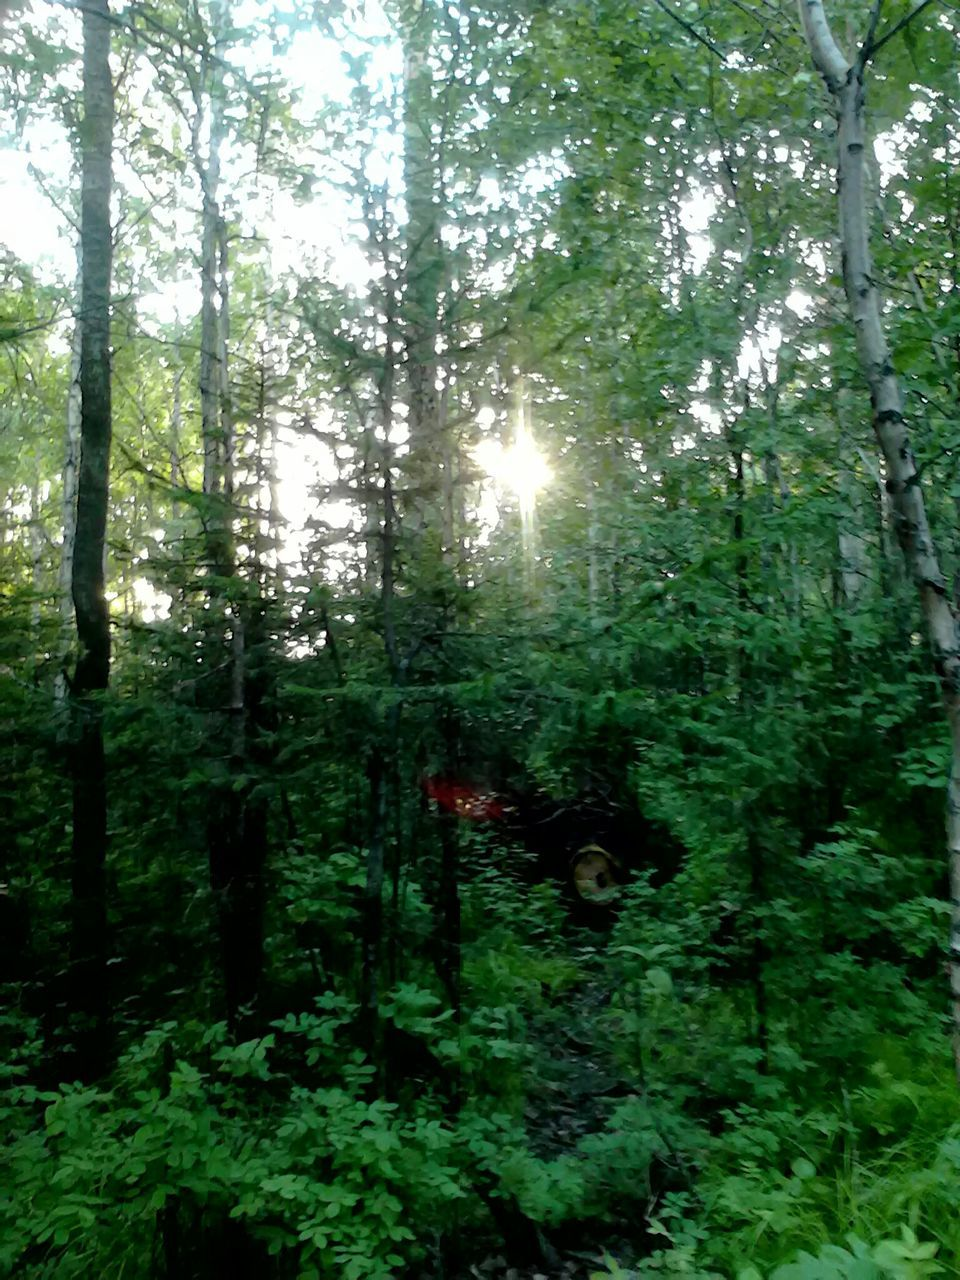 tree, forest, nature, growth, no people, tranquility, green color, tranquil scene, day, outdoors, beauty in nature, plant, scenics, freshness